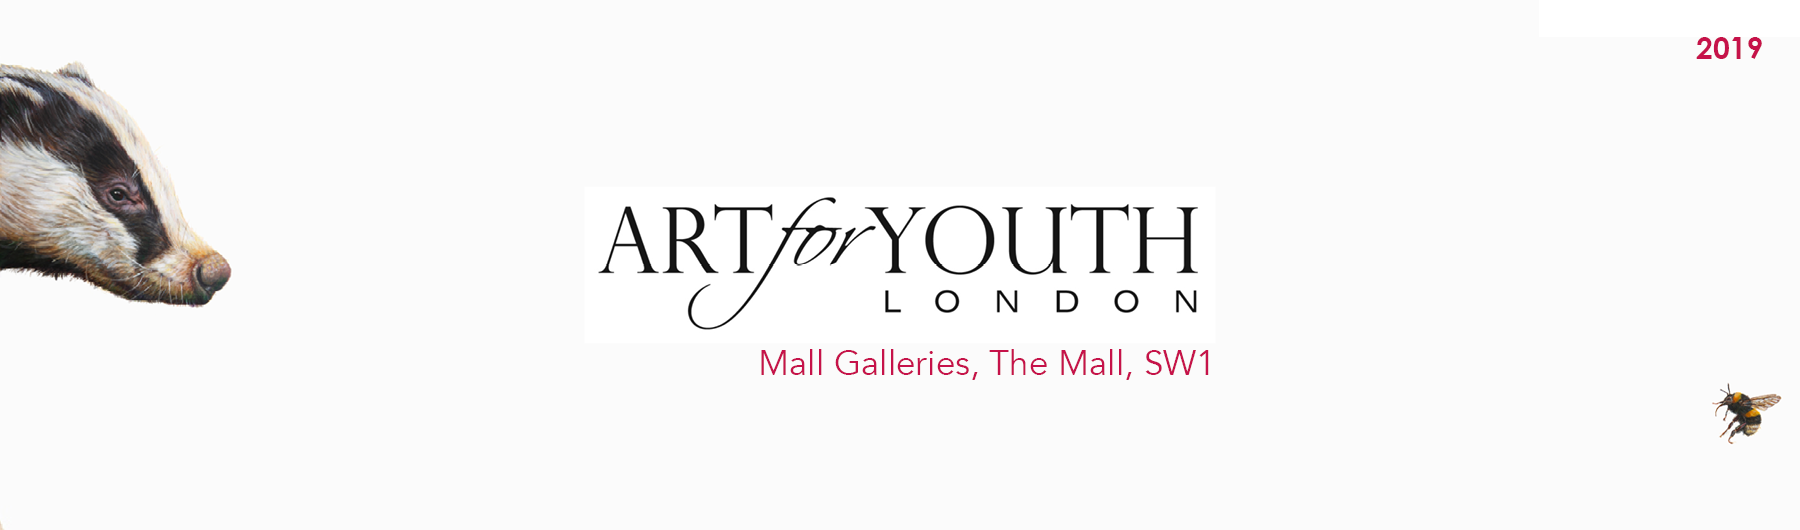 Art for Youth London 2019